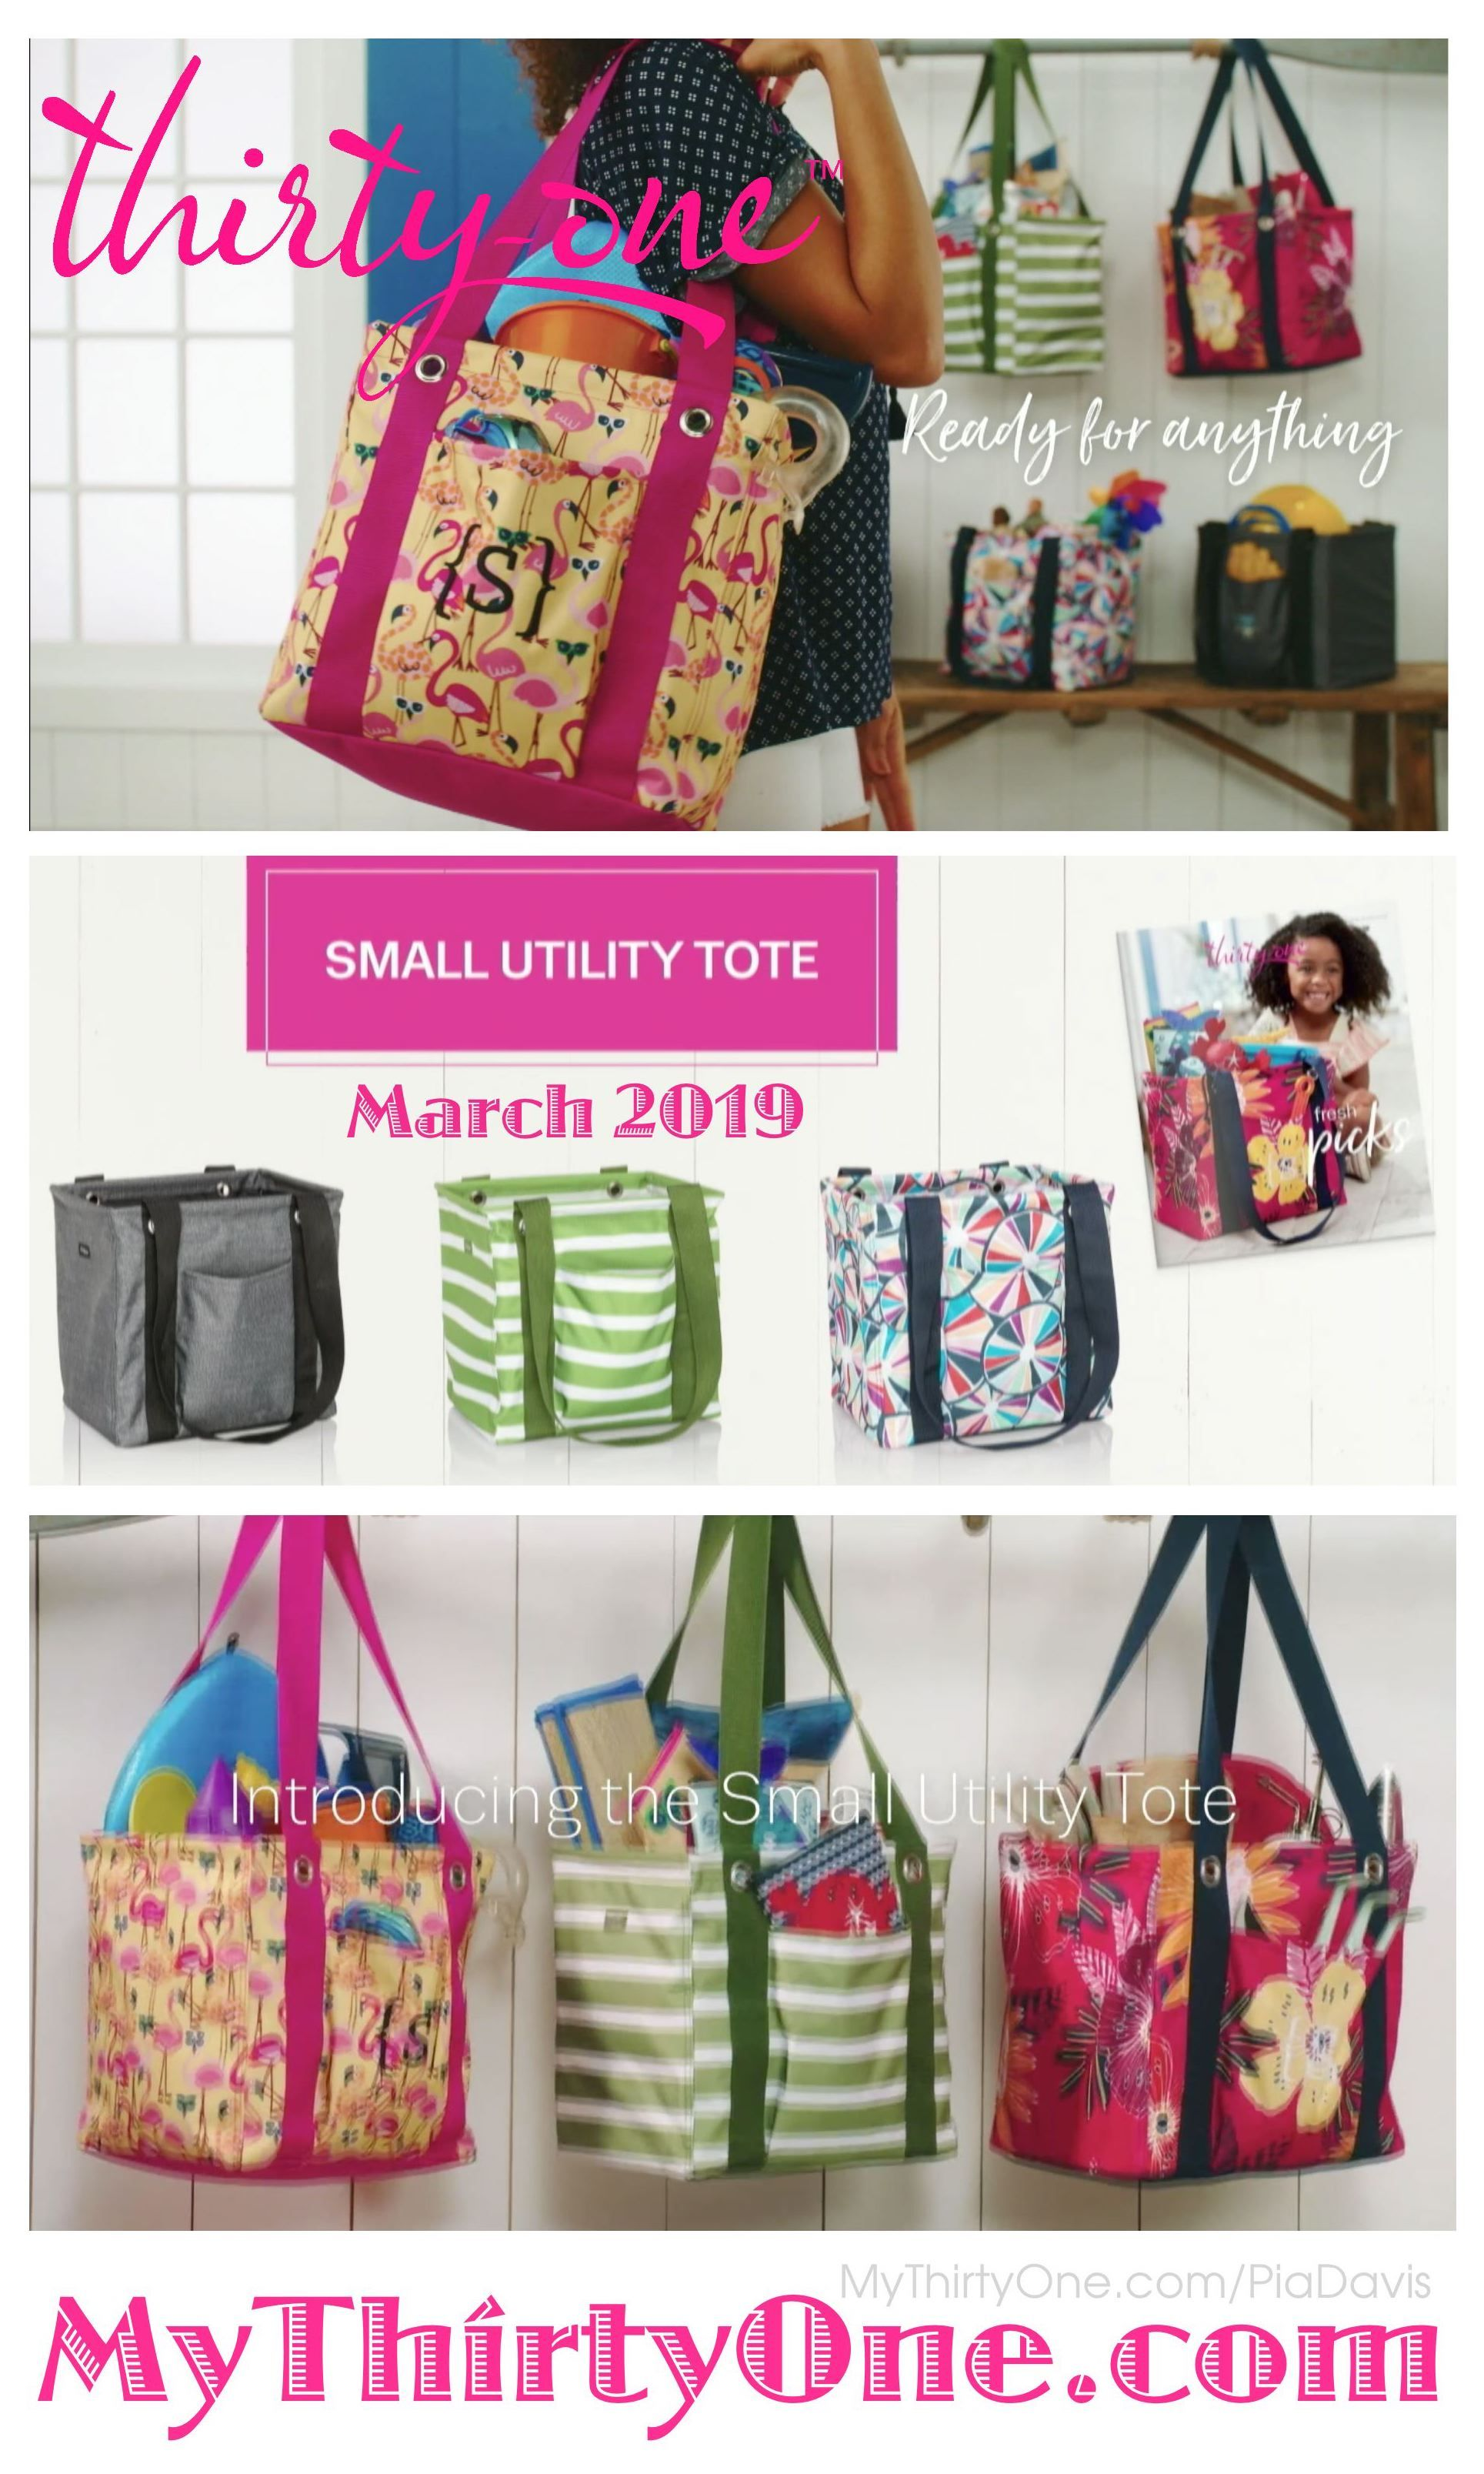 bf88d72703d 31 Introducing the Small Utility Tote available March 1st 2019 from ...